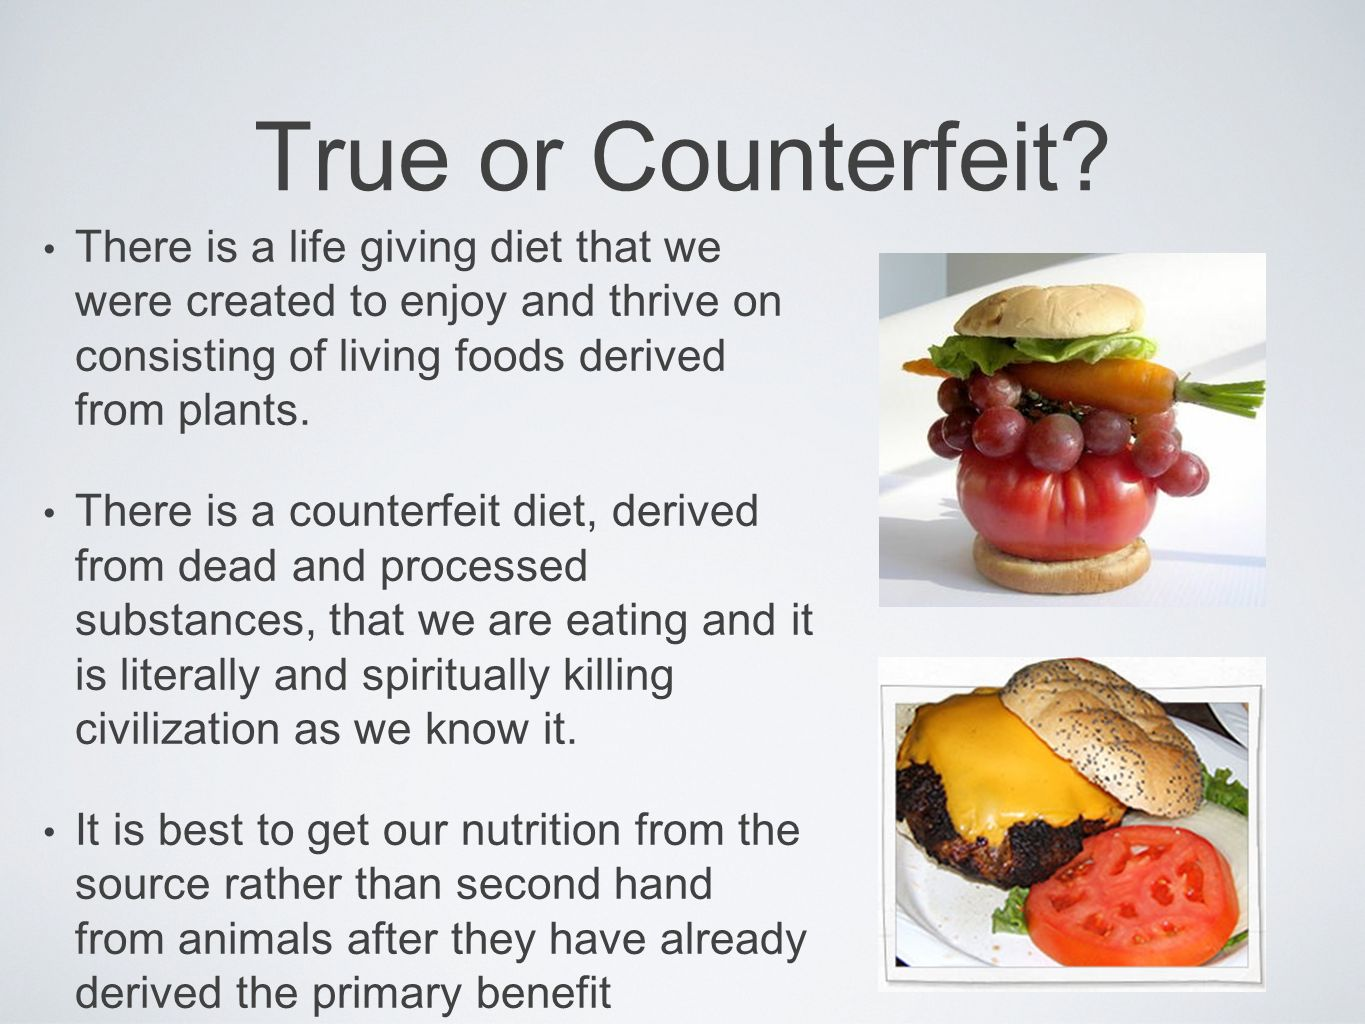 True or Counterfeit There is a life giving diet that we were created to enjoy and thrive on consisting of living foods derived from plants.